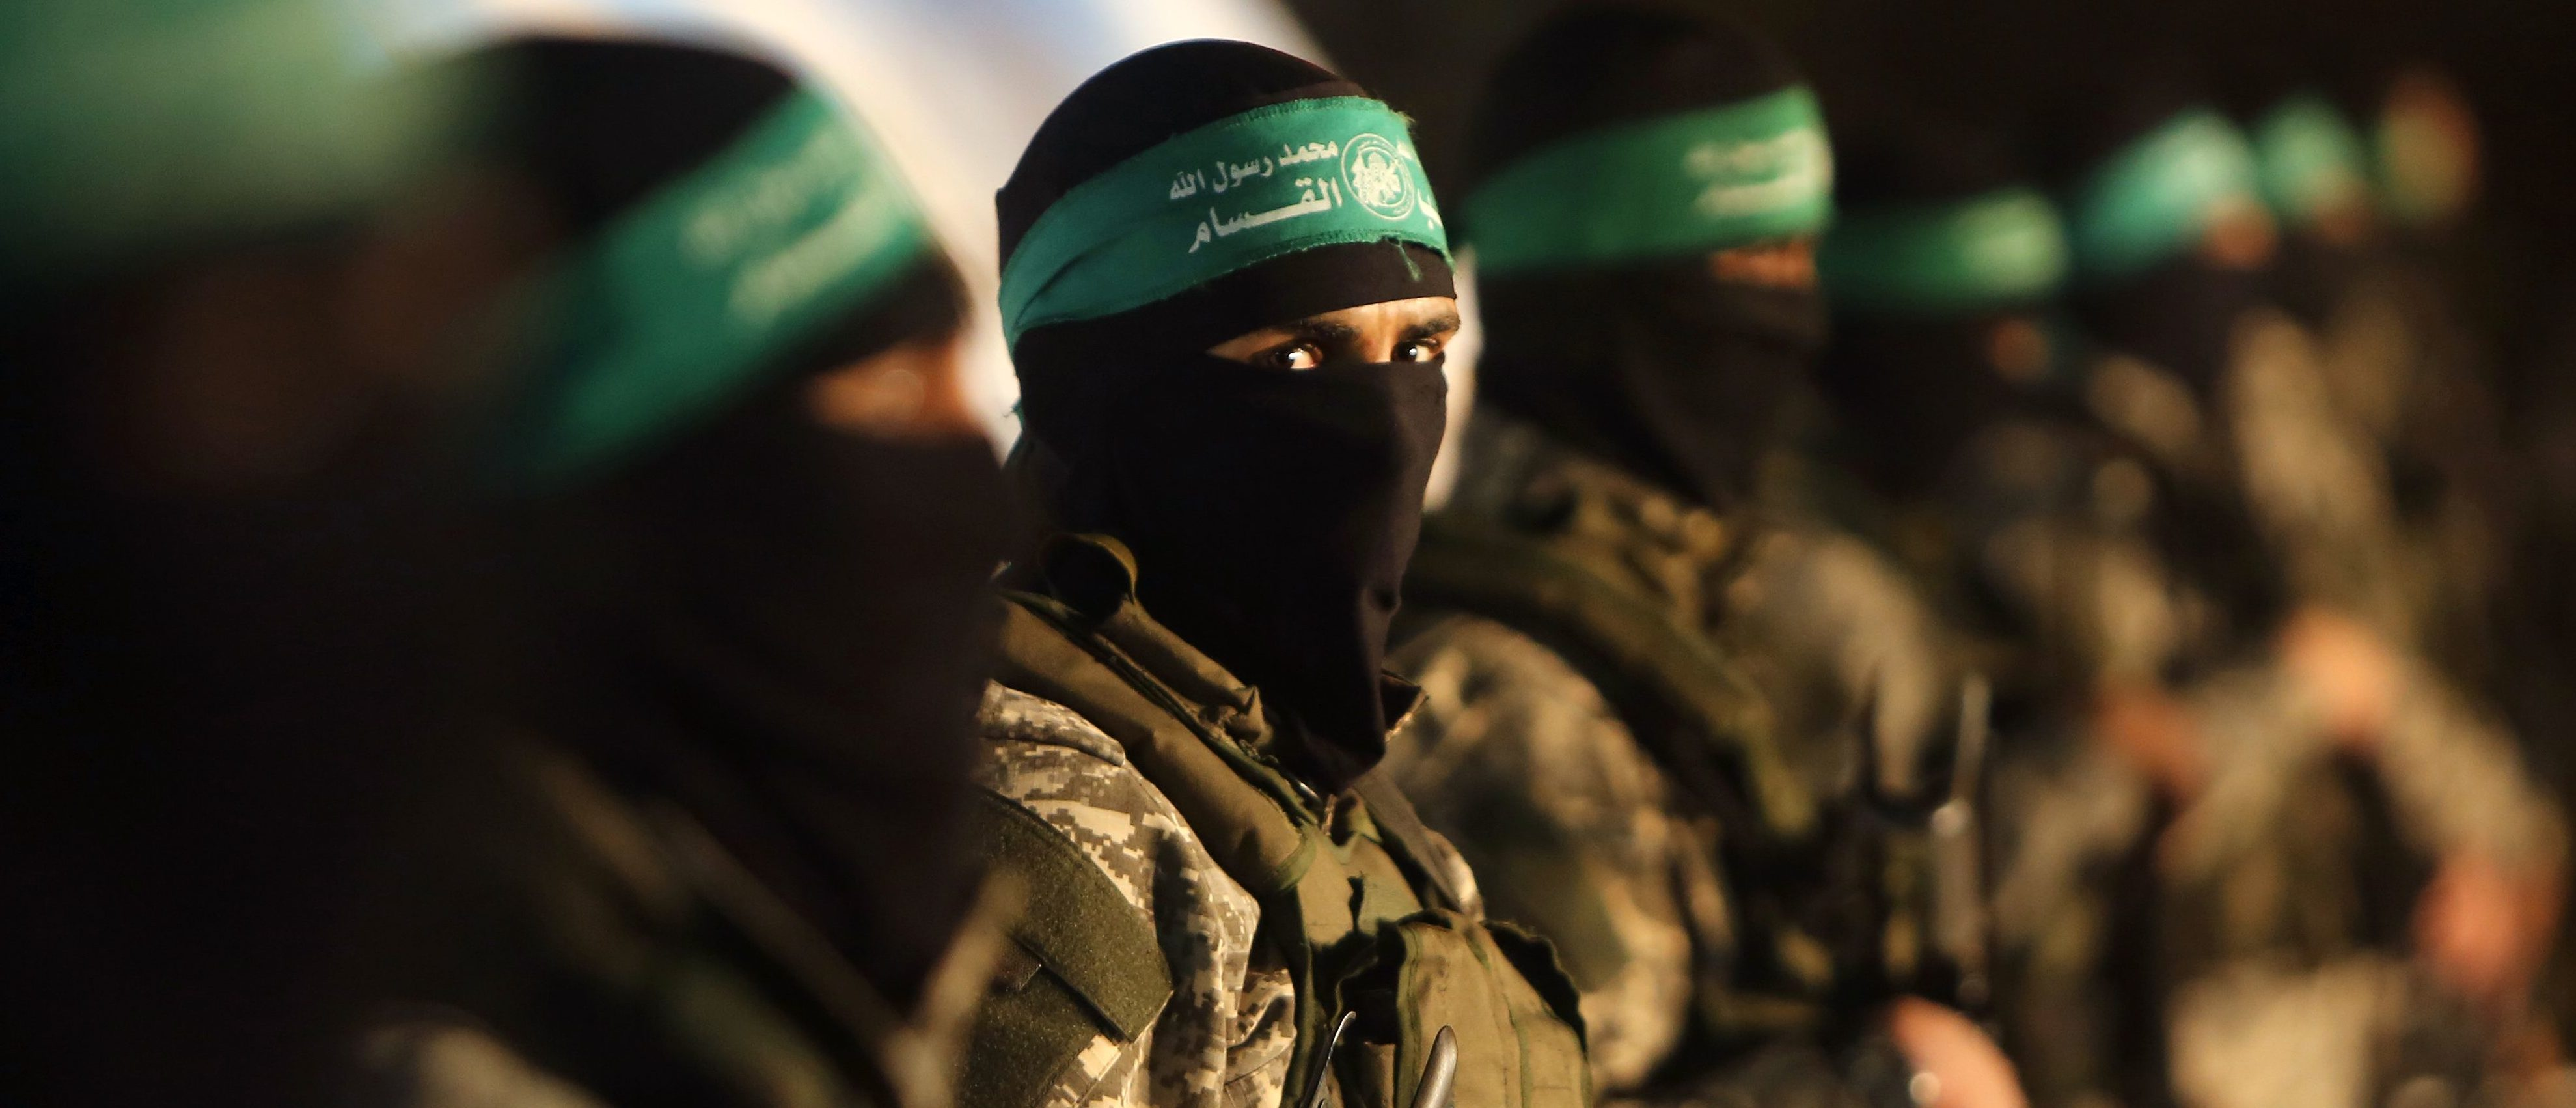 TOPSHOT - Palestinian members of the Ezzedine al-Qassam Brigades, the armed wing of the Hamas movement, take part in a gathering on January 31, 2016 in Gaza city to pay tribute to their fellow militants who died after a tunnel collapsed in the Gaza Strip. Seven Hamas militants were killed on January 28, 2016 after a tunnel built for fighting Israel collapsed in the Gaza Strip, highlighting concerns that yet another conflict could eventually erupt in the Palestinian enclave. / AFP / MAHMUD HAMS (Photo credit should read MAHMUD HAMS/AFP/Getty Images)